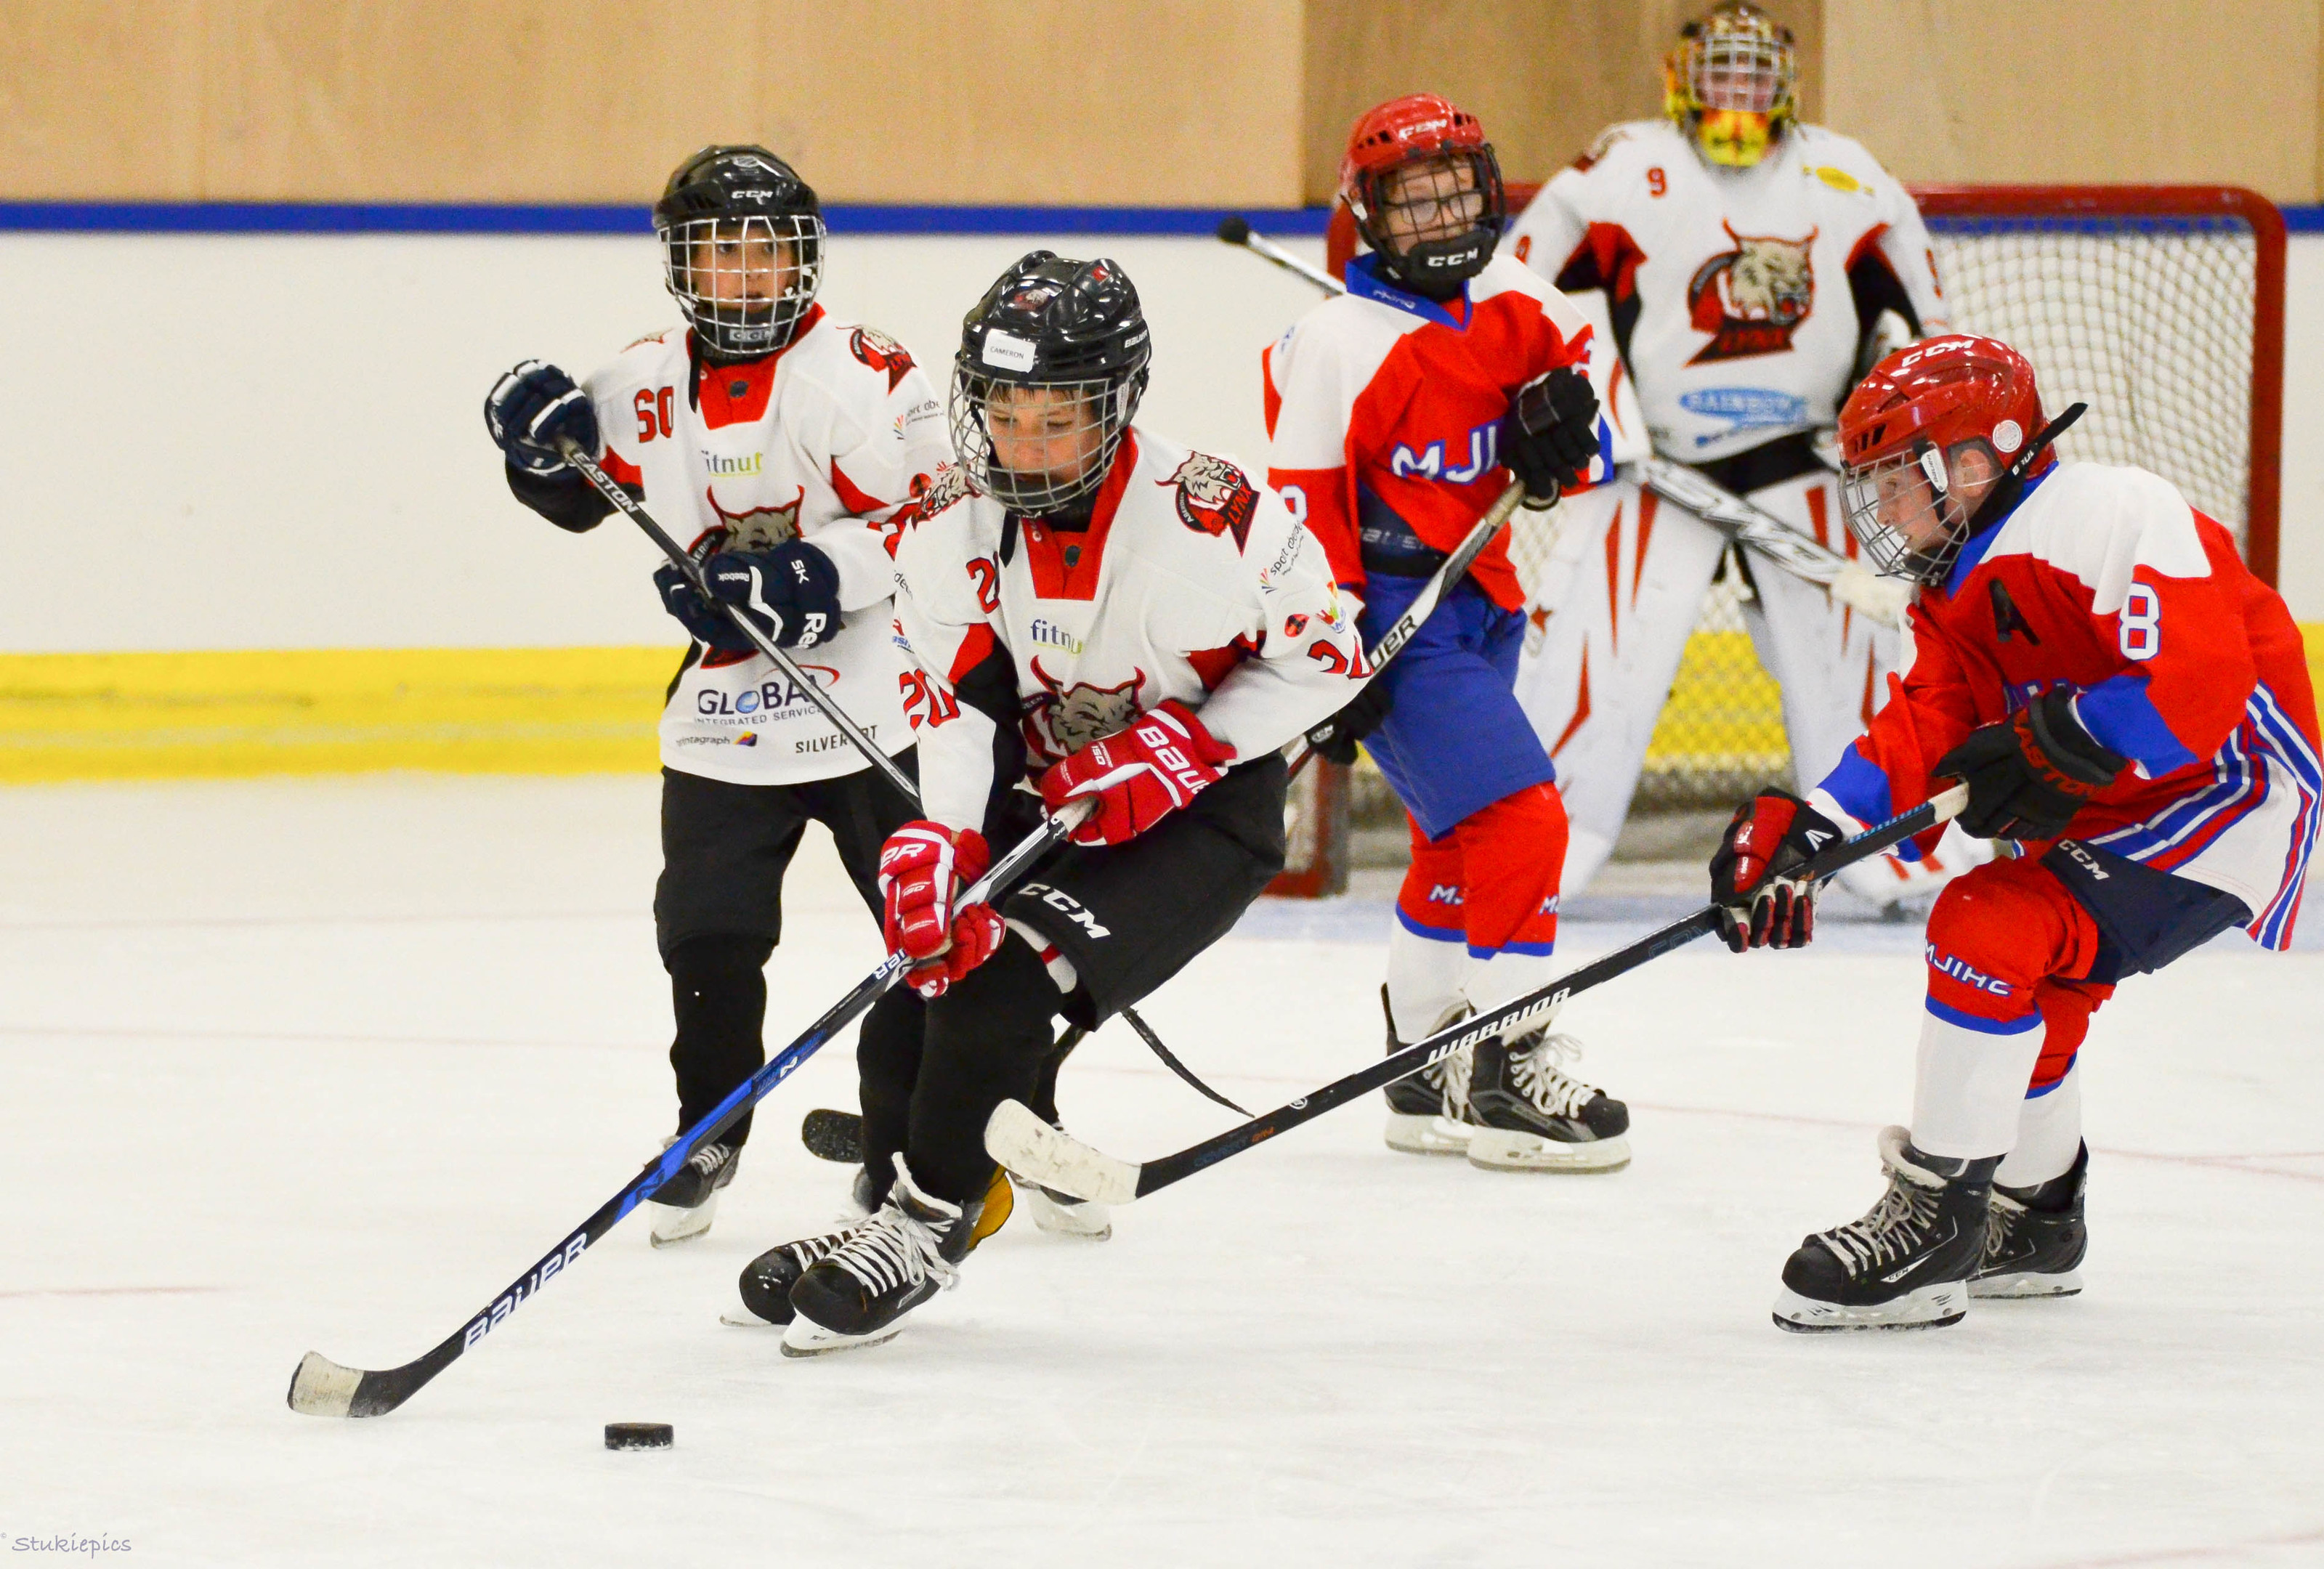 Aberdeen Lynx want to hear from youngsters keen to play ice hockey - even if they've never picked up a stick before.